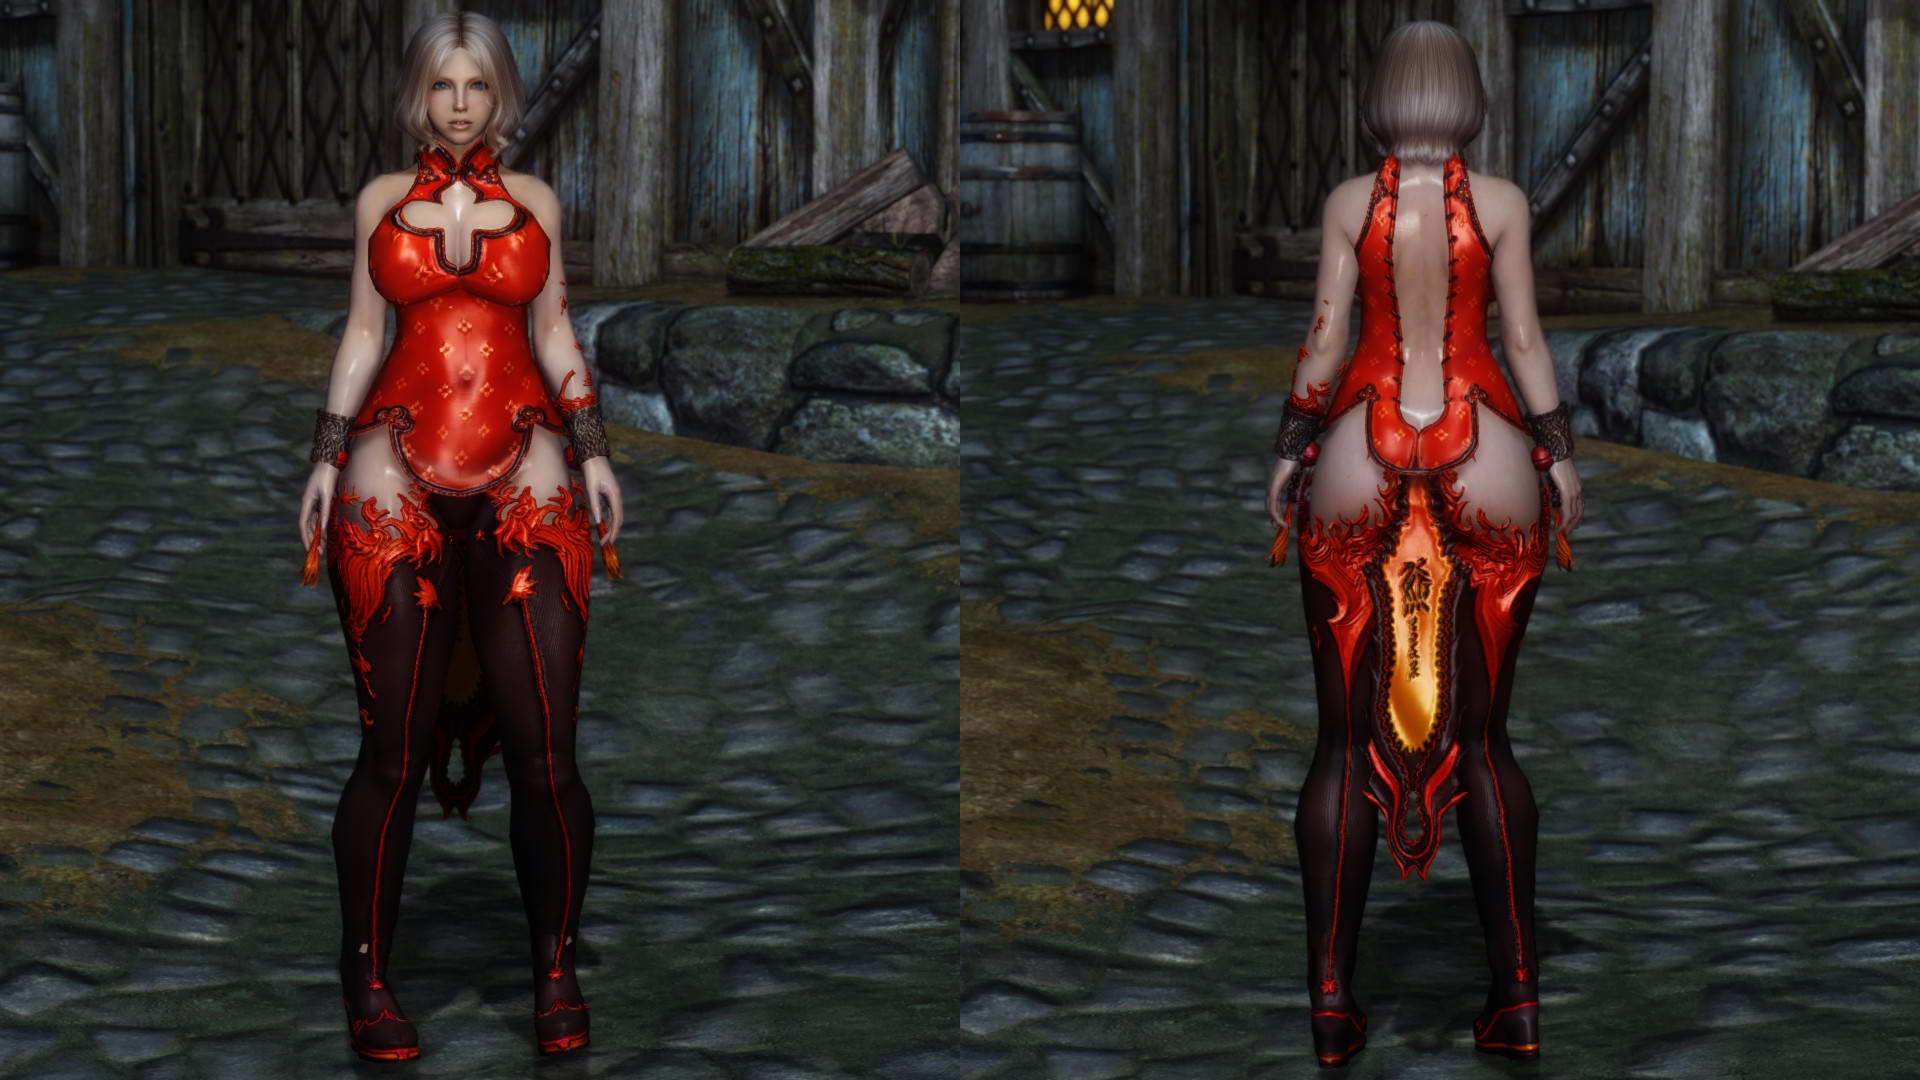 Blade_and_Soul_Red_Bird_Outfit_SeveNBase_2.jpg